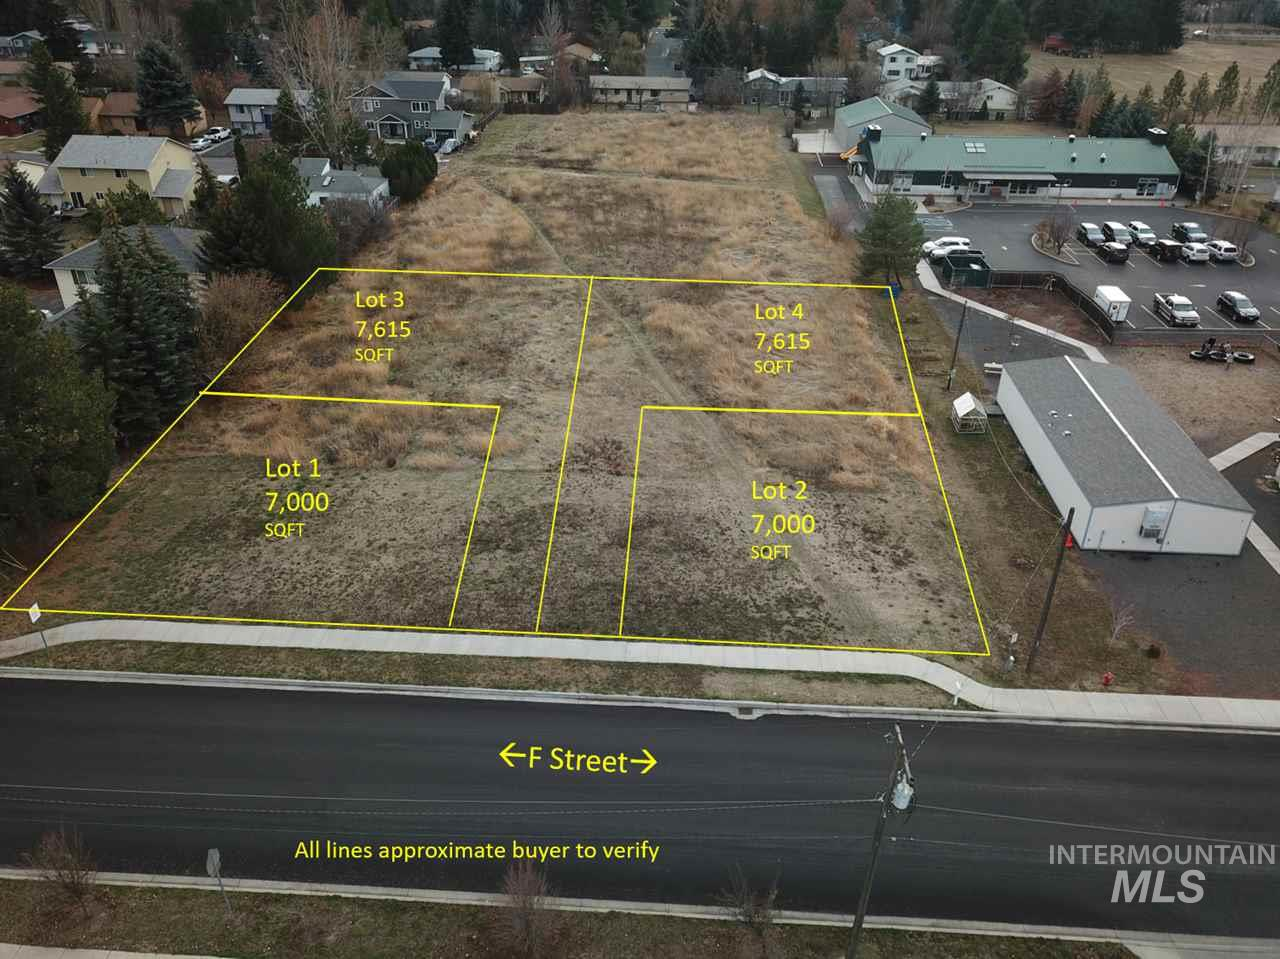 000 F Street Parcel # 2, Moscow, Idaho 83843, Land For Sale, Price $77,000, 98718651